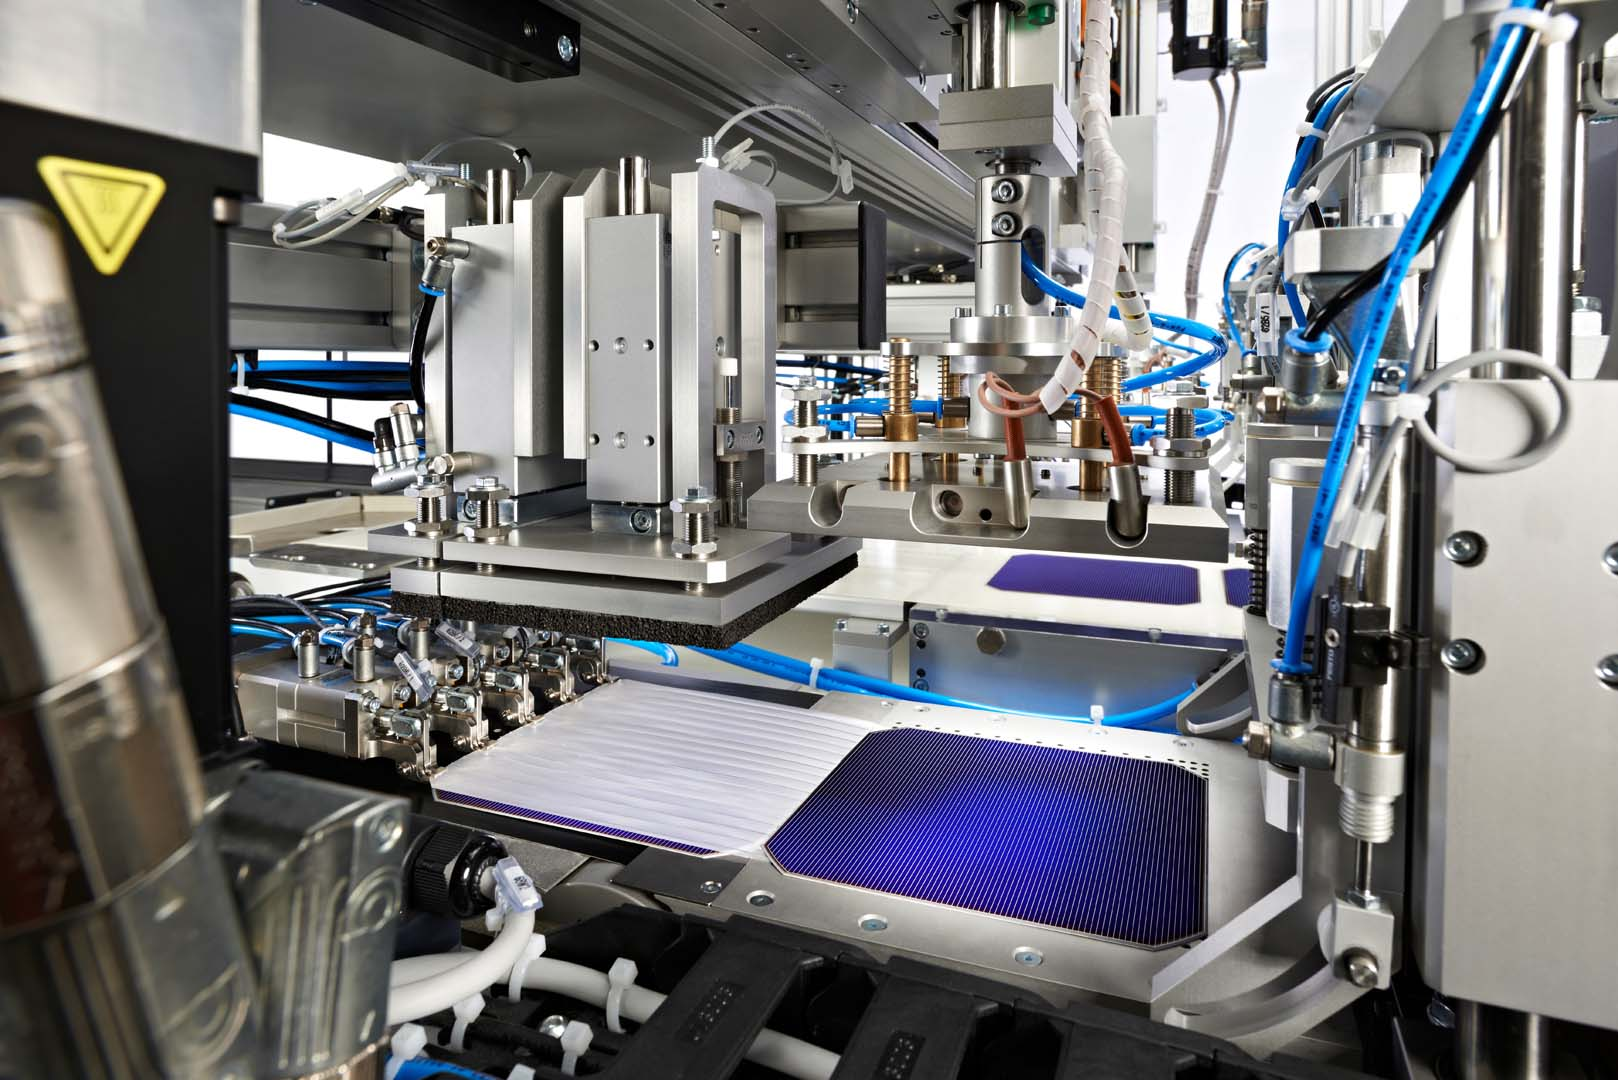 Its future PV business activities in Europe will be focused on advanced technologies such as Heterojunction (HJT), 'SmartWire Connection Technology' (SWCT) and tandem cell technologies, primarily at its facilities in Hohenstein-Ernstthal, Germany. Image: Meyer Burger